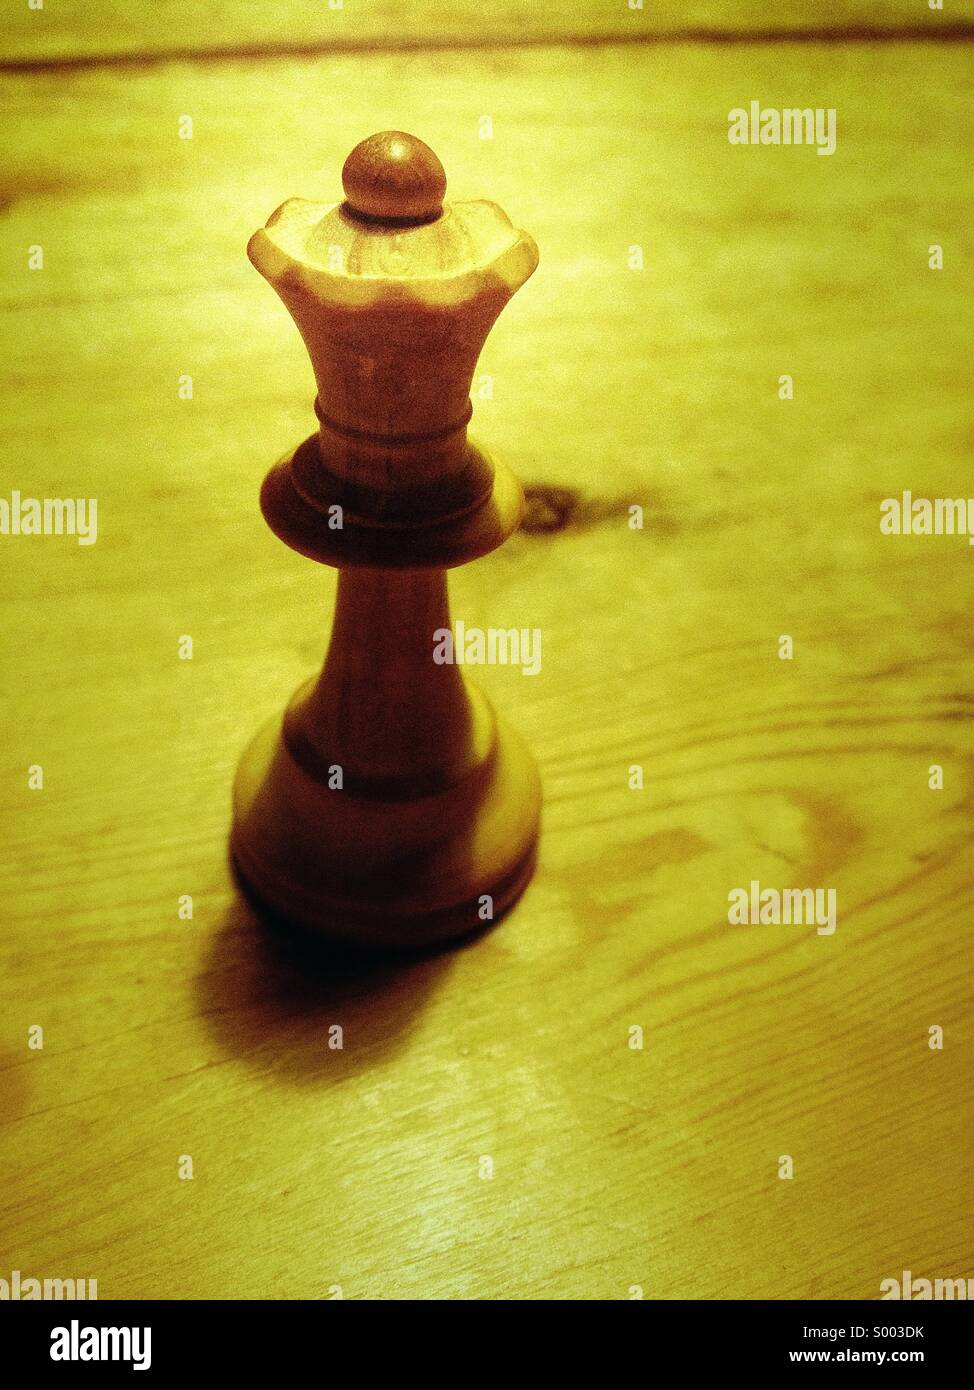 Chess piece - Stock Image